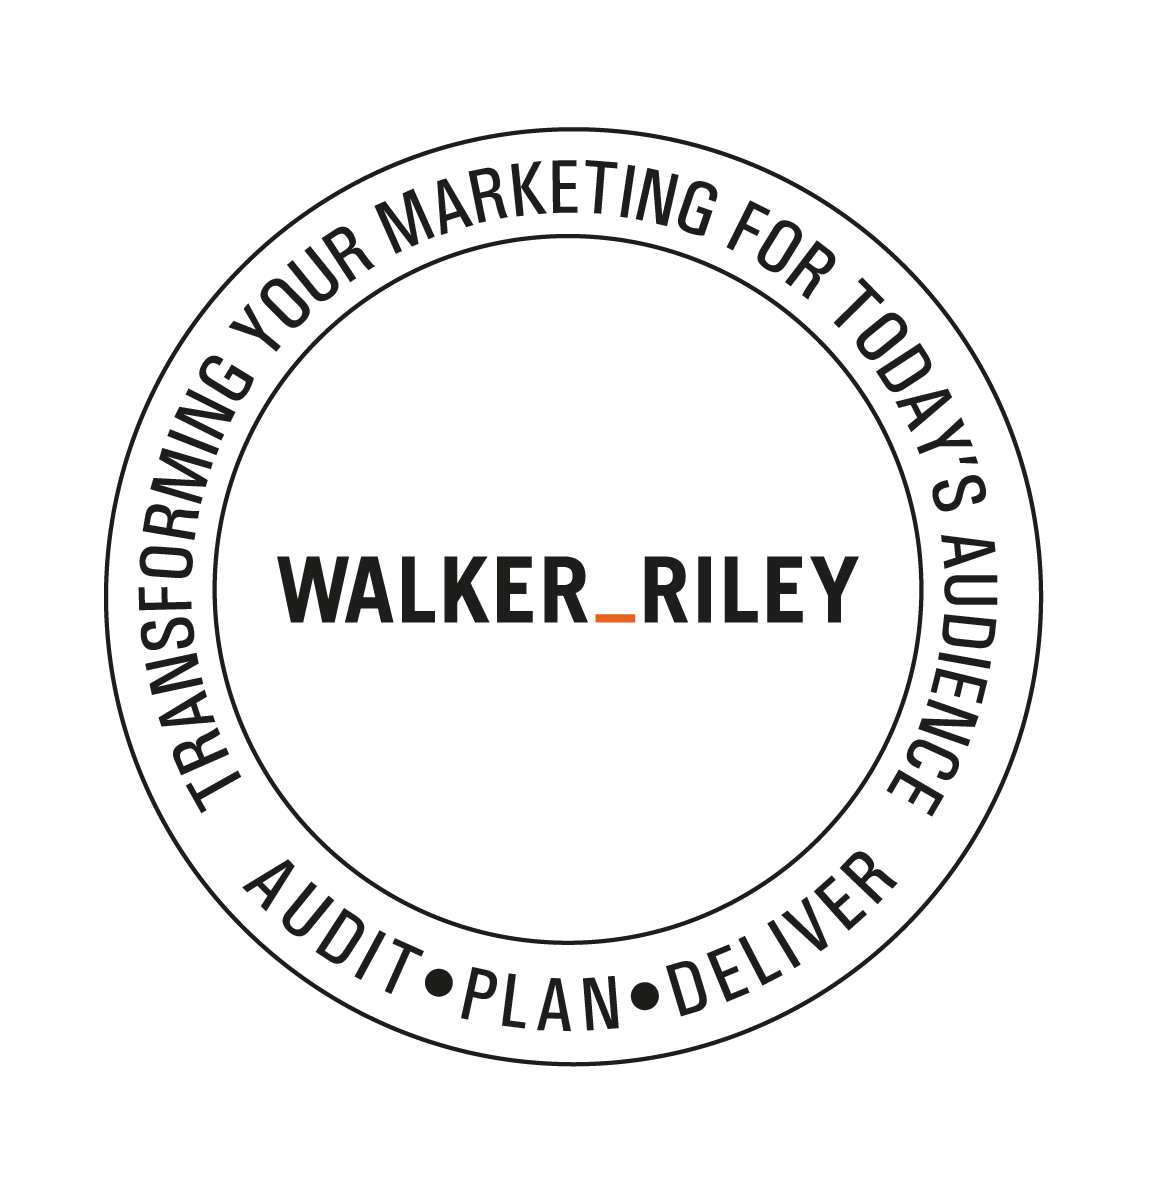 Walker-Riley